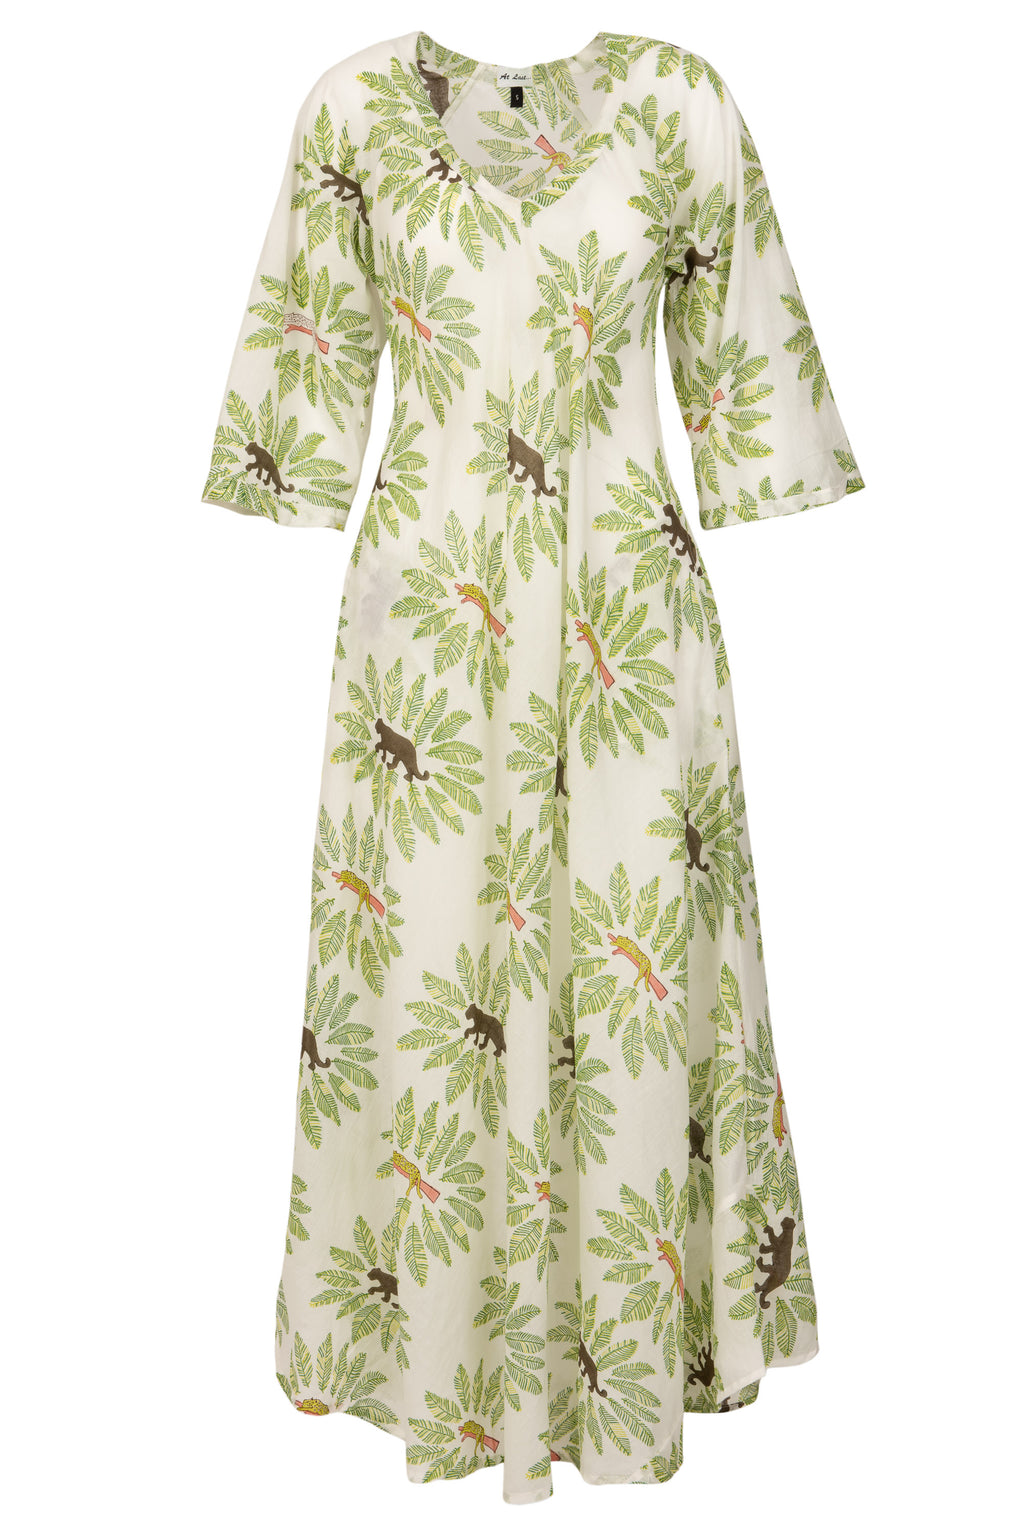 Anna Cotton Dress- Jungle Cat